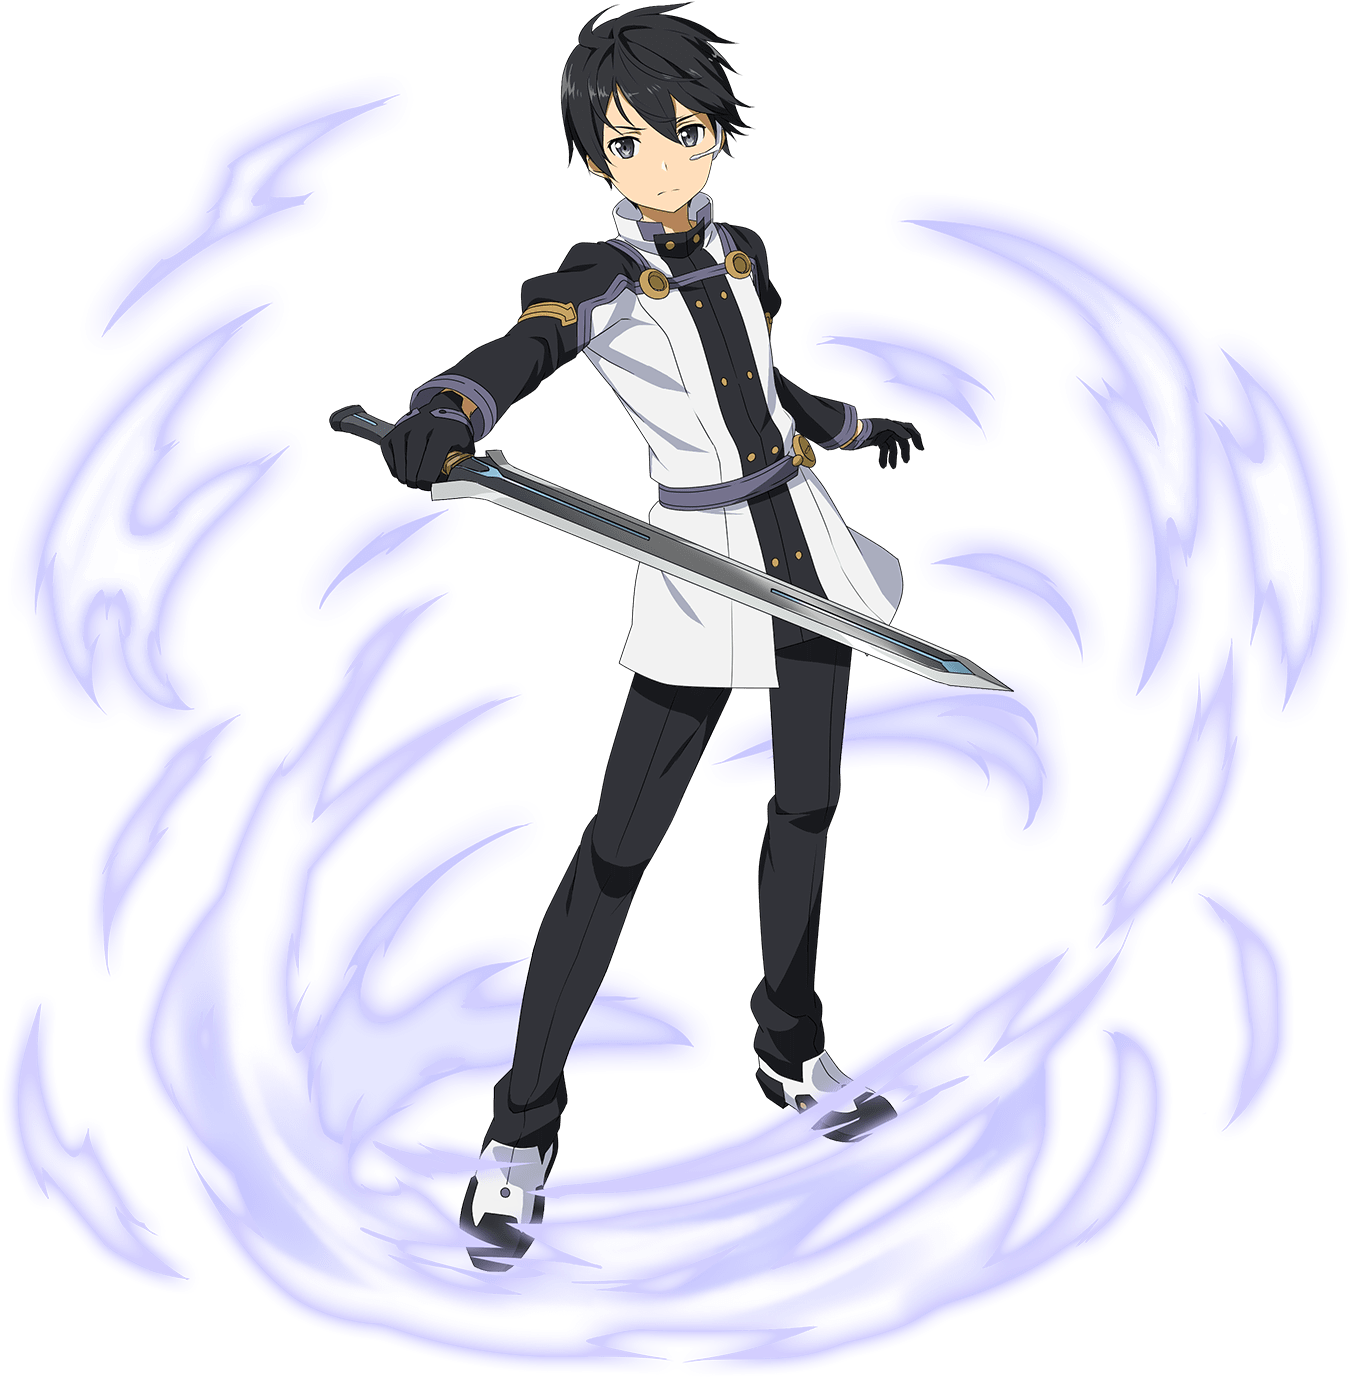 Download Hd Anime Boy With Black Hair Sword Art Online Ordinal